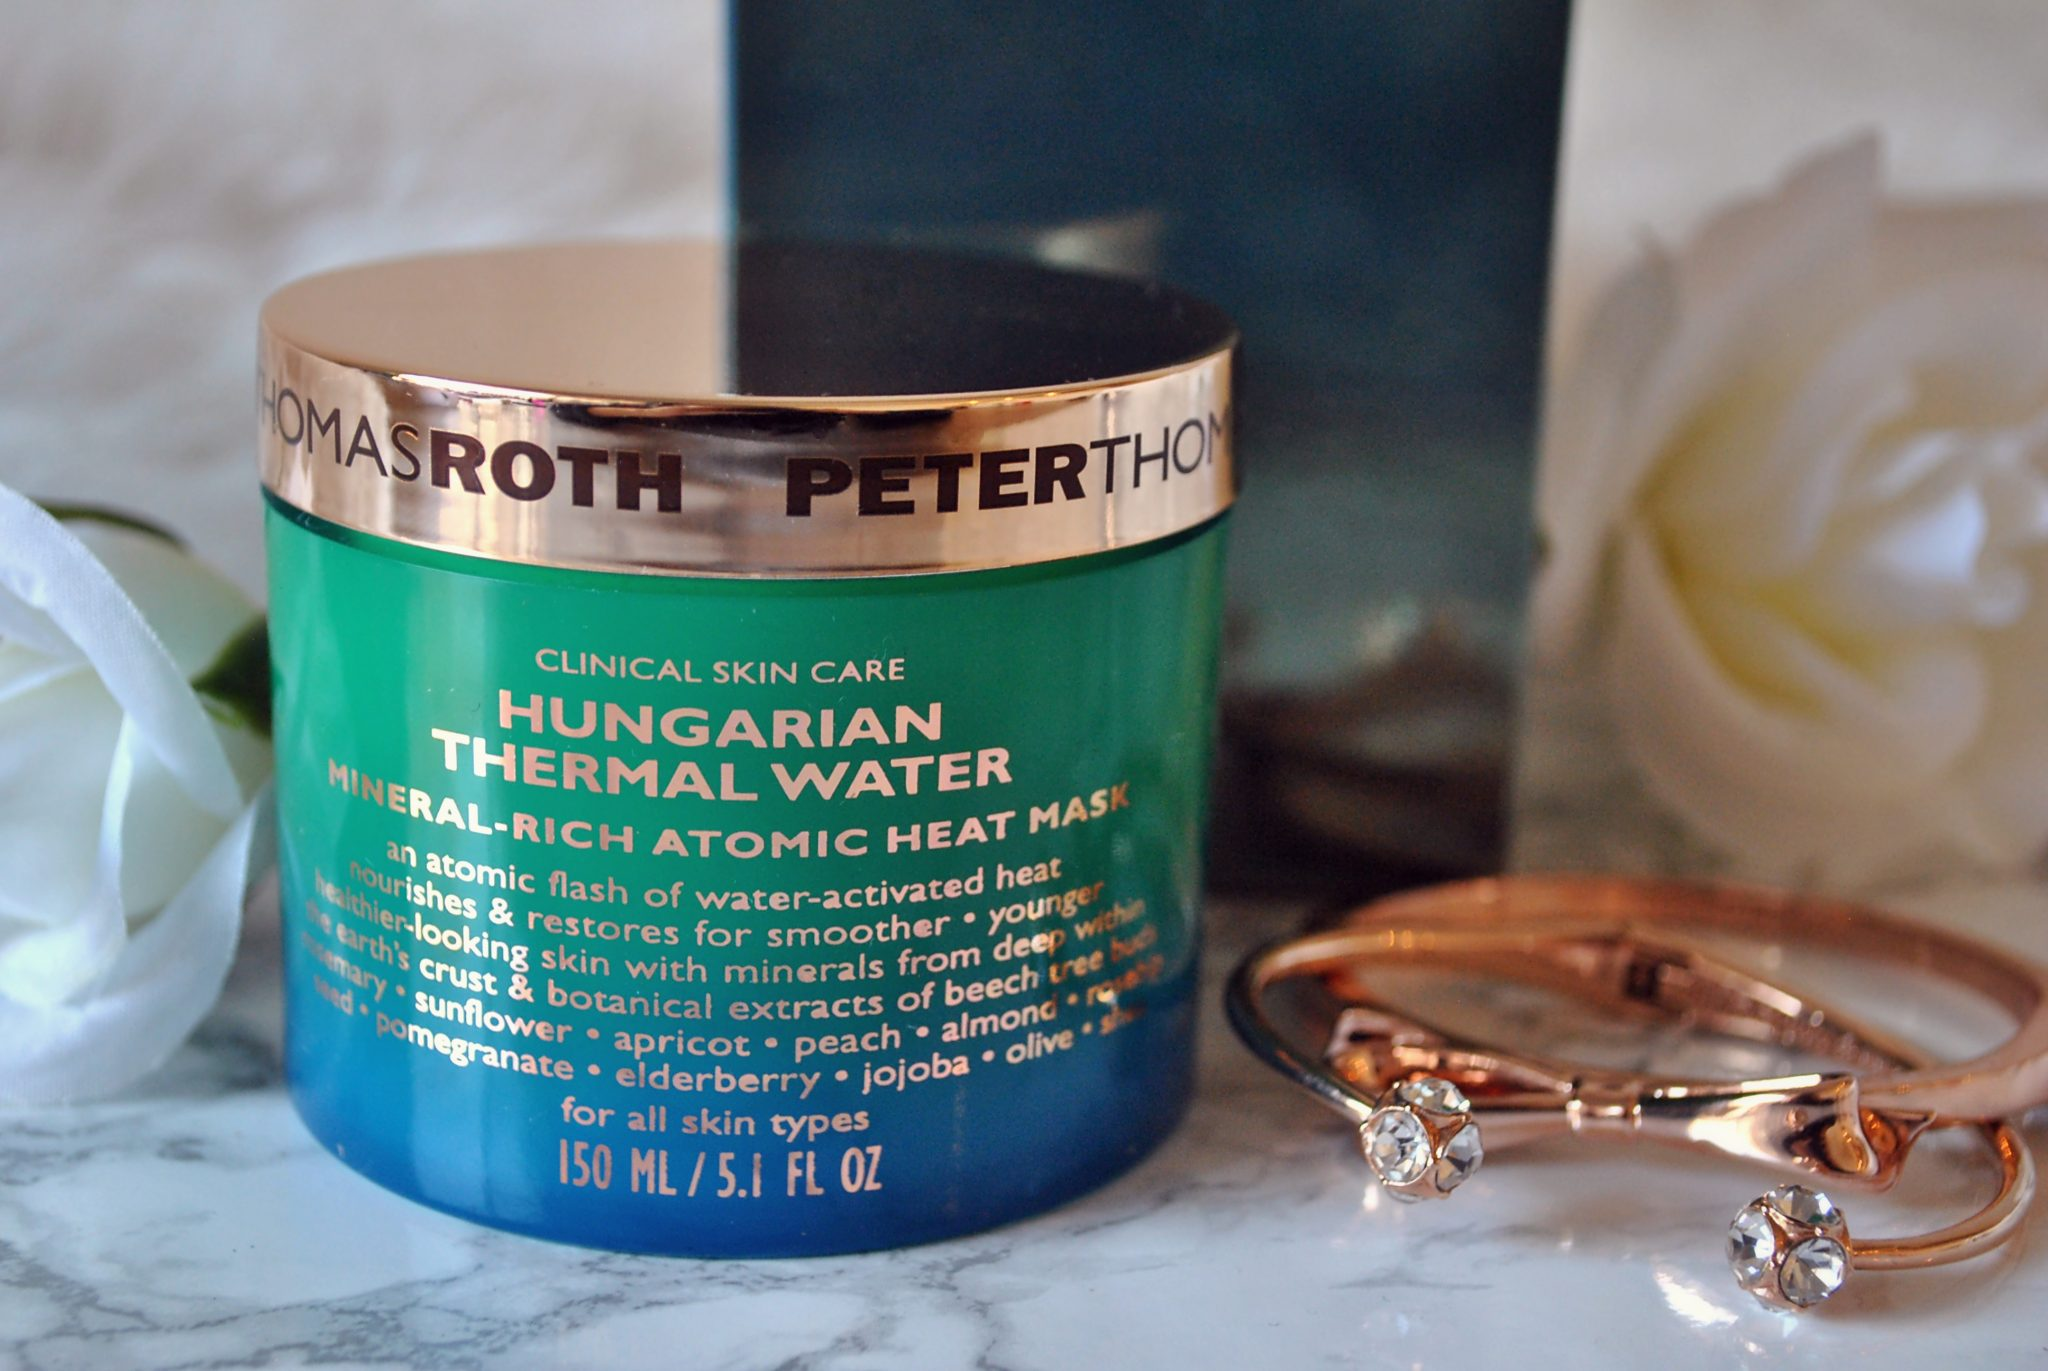 The-Hungarian-Brunette-Peter-Thomas-Roth-Hungarian-Thermal-Water-Heat-Mask-Beauty-Review.jpg